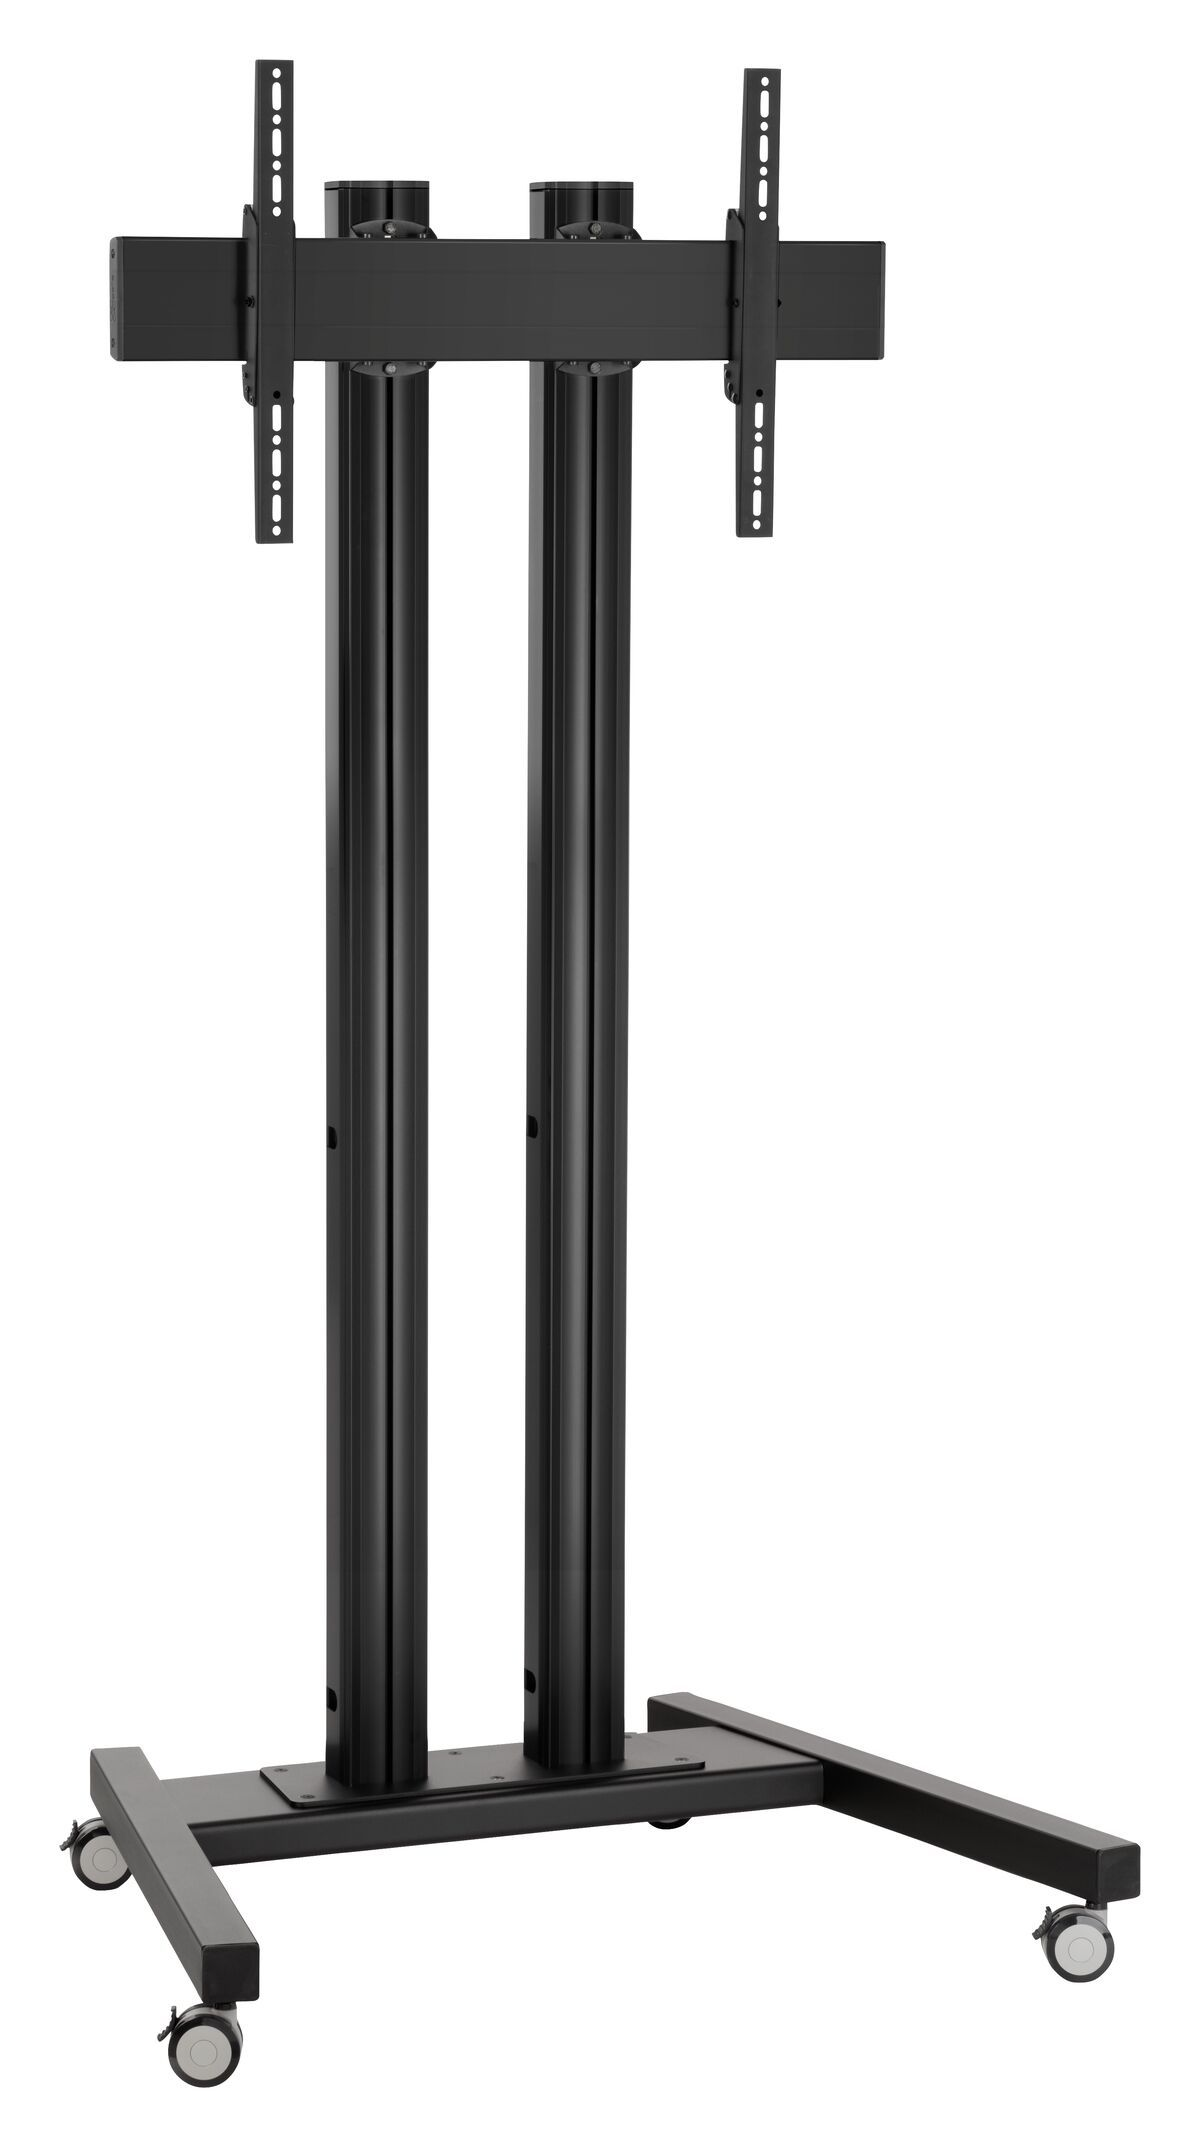 Vogel's TD2084 Trolley double pole - Product